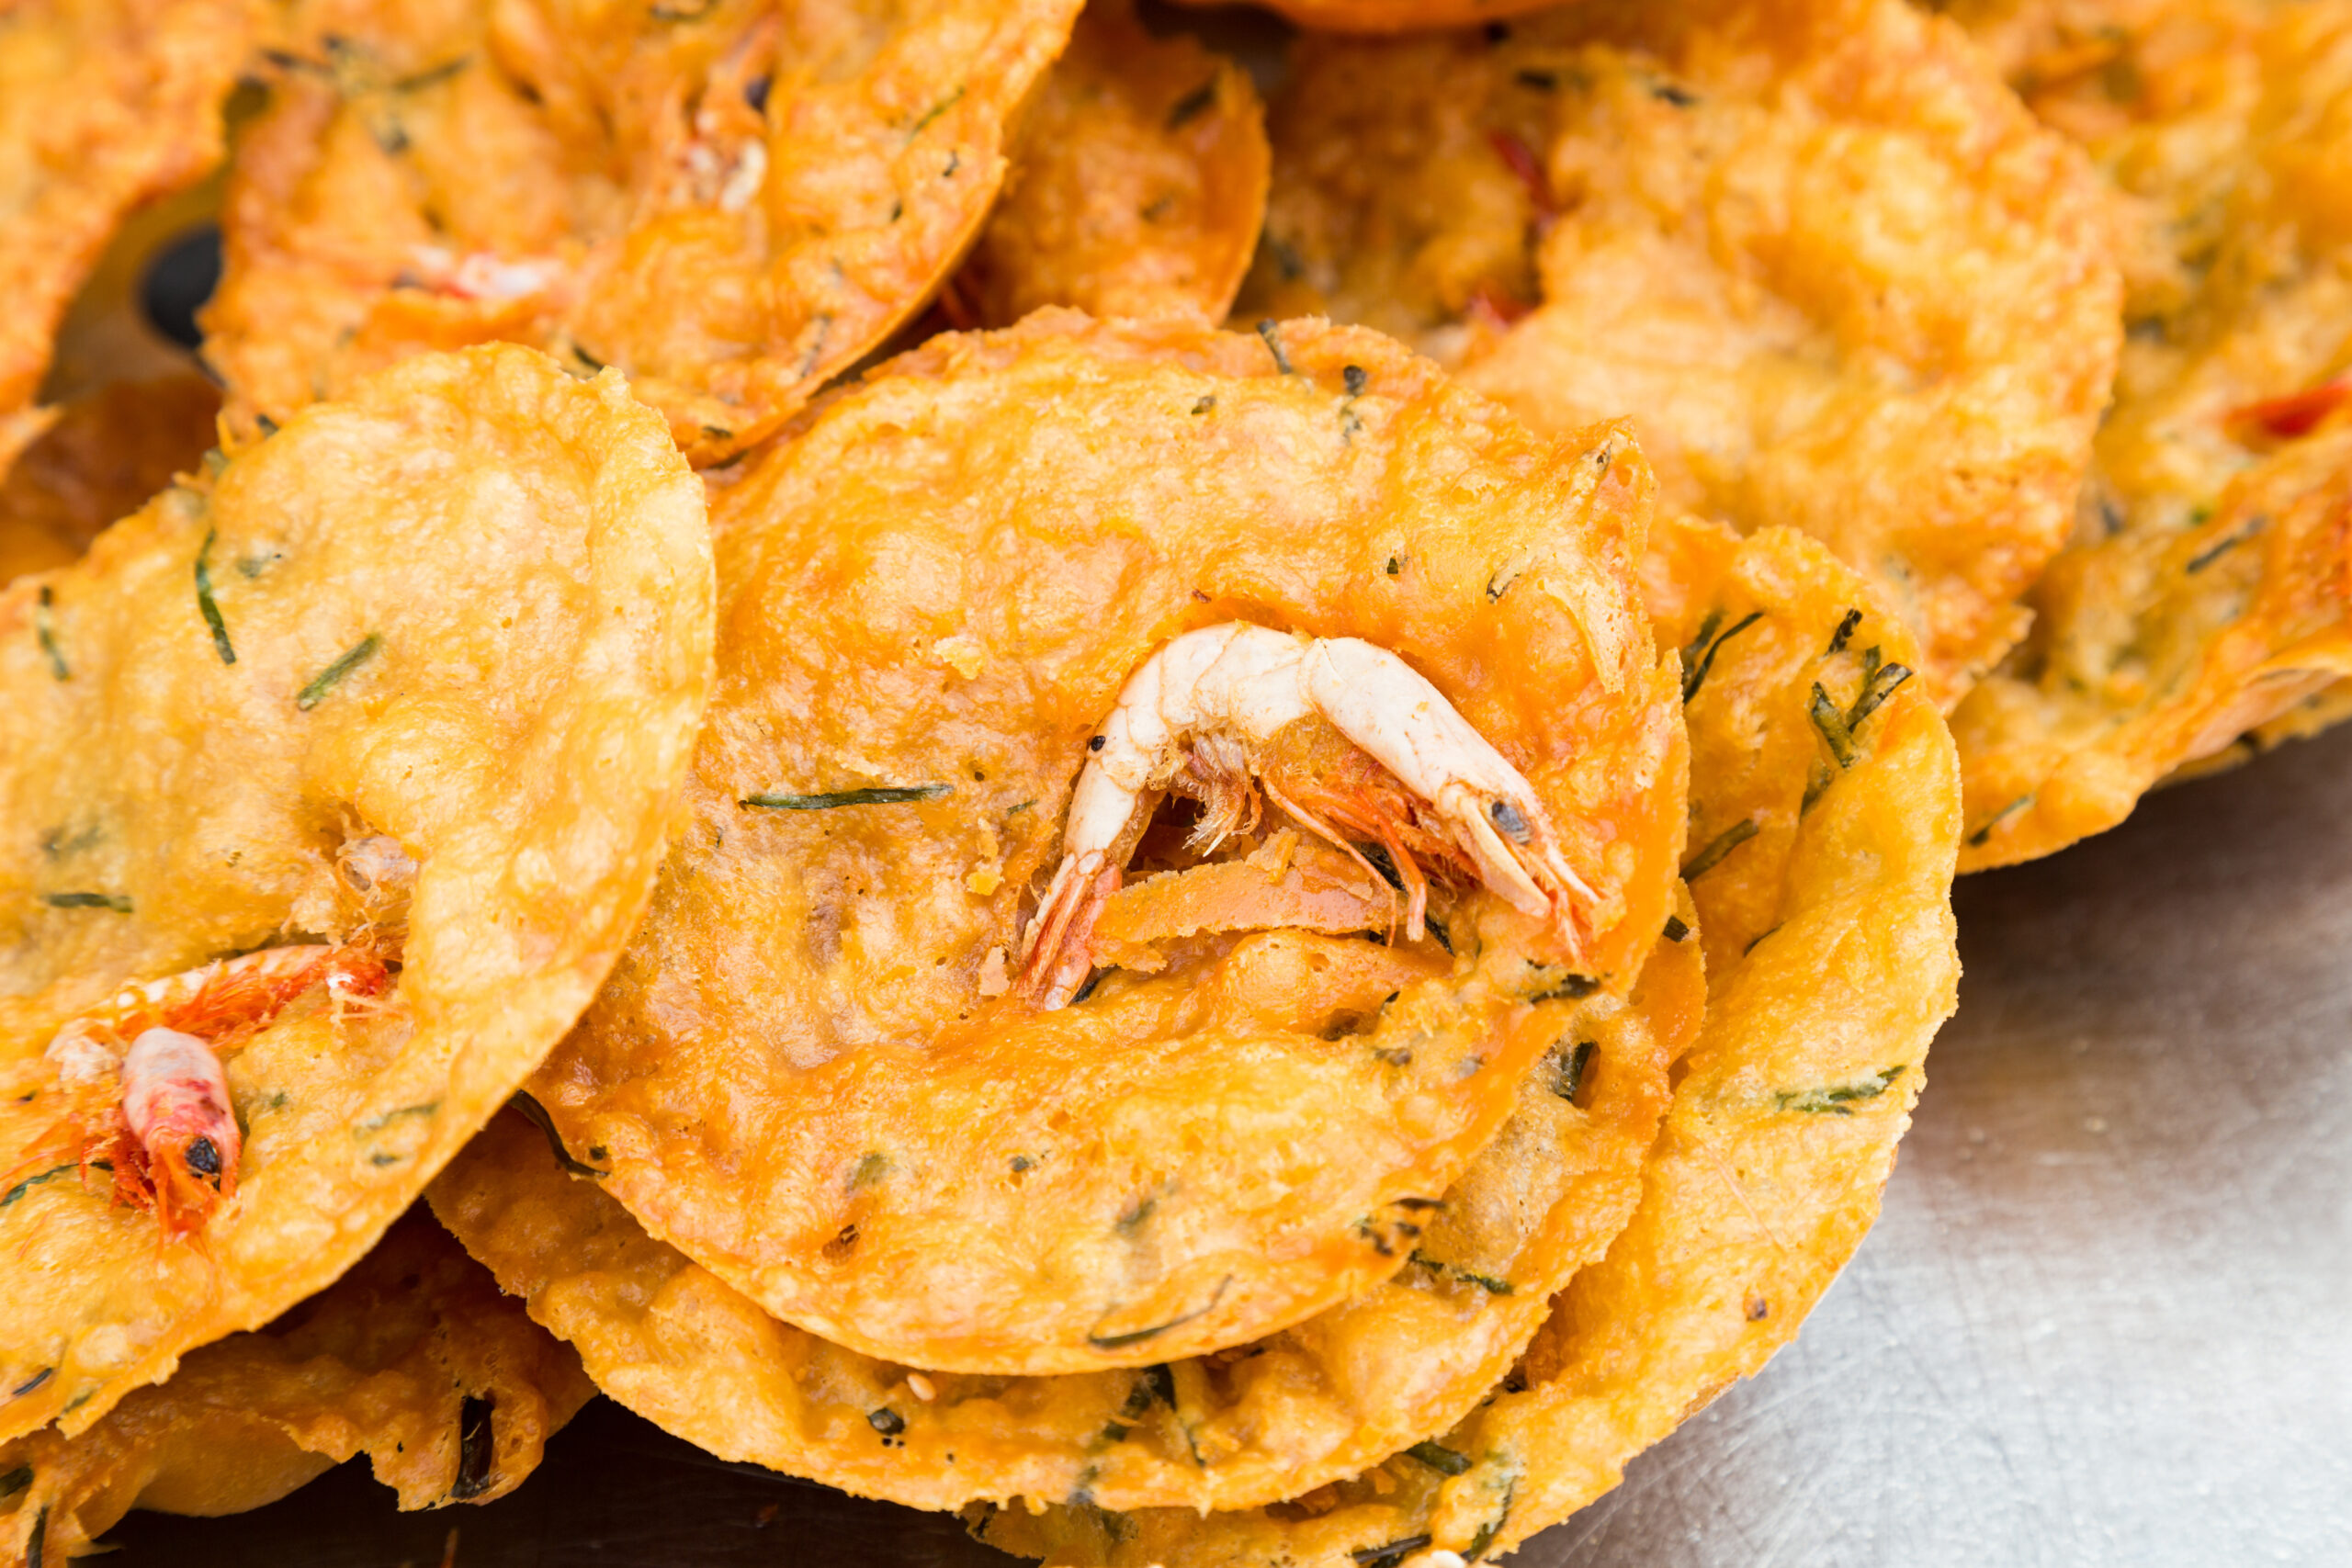 cucur udang malaysia prawn fritters